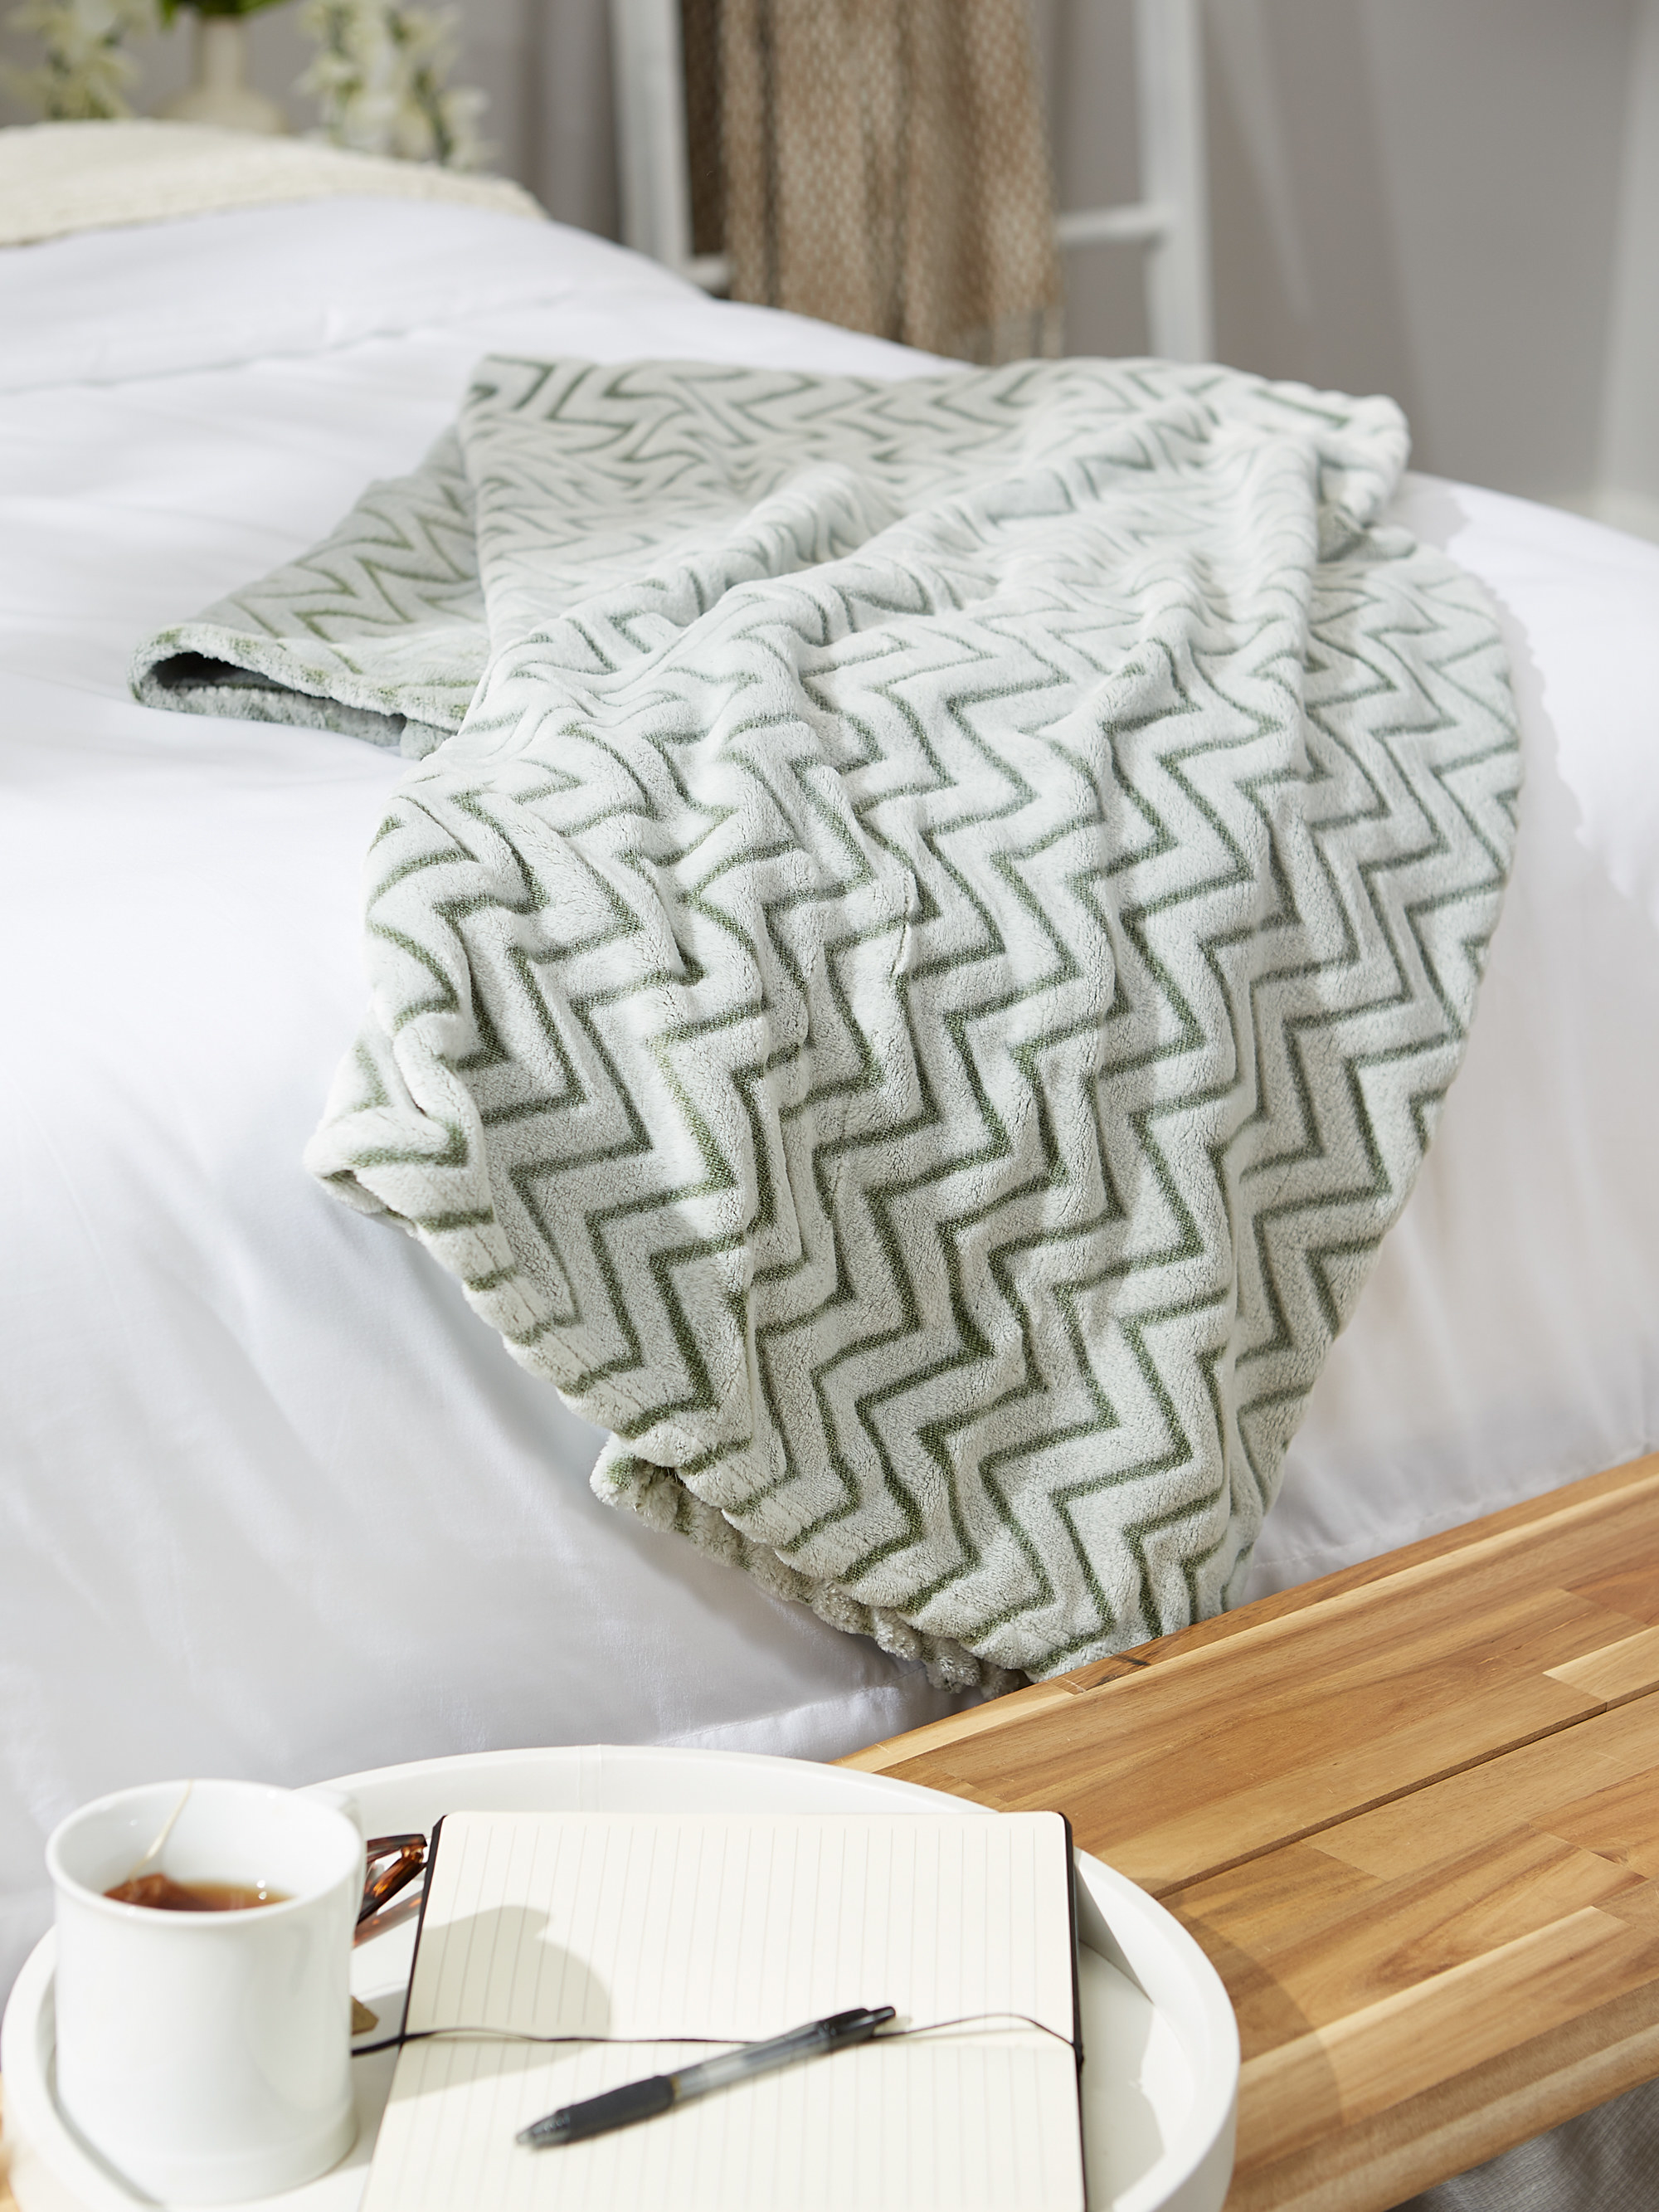 the chevron throw displayed on a bed with a tray with coffee, a pen, and a notebook on it